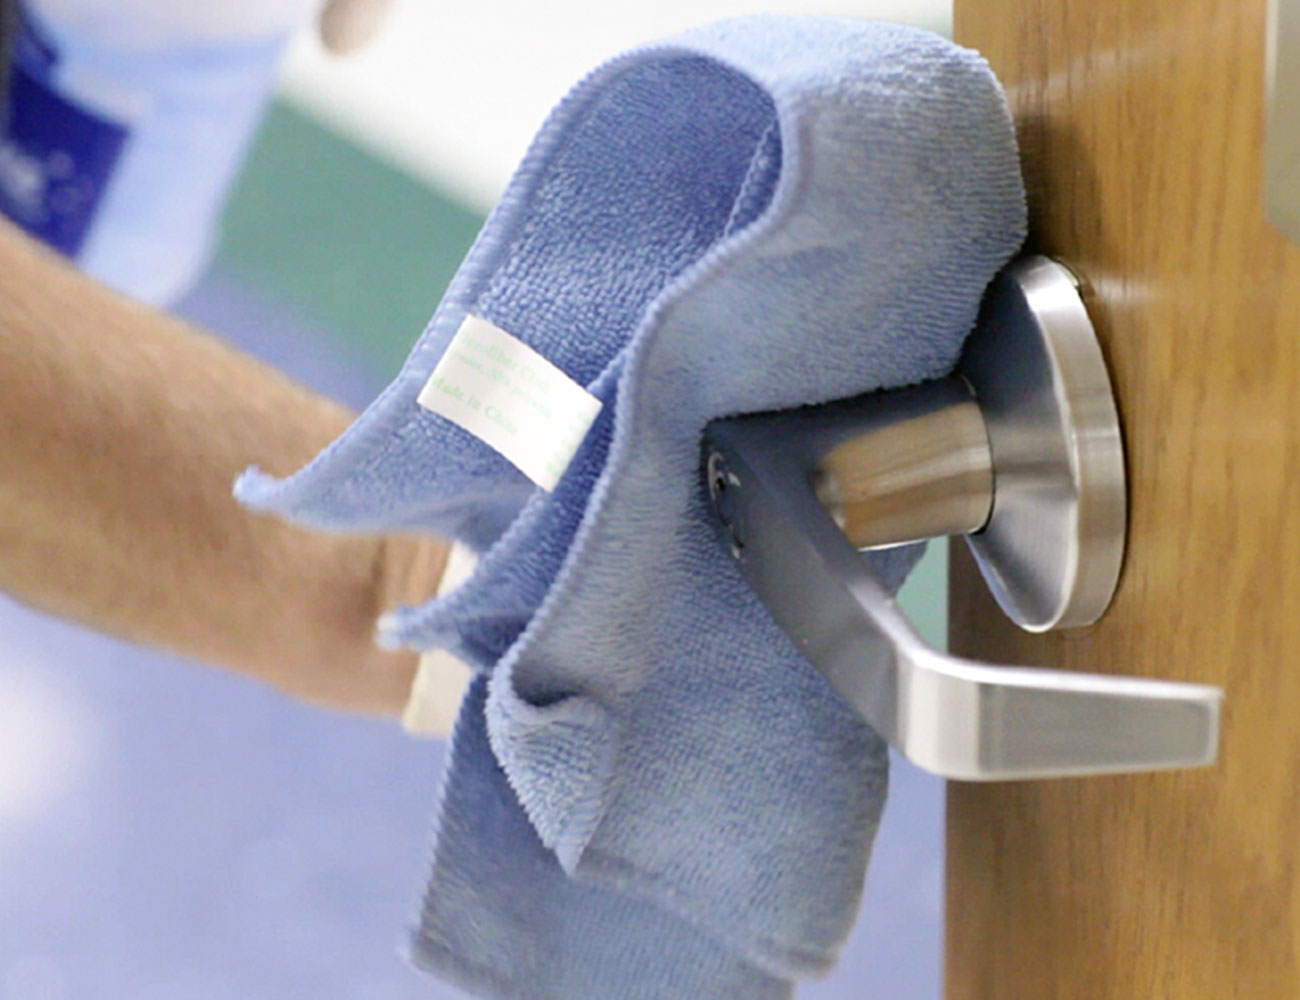 Clean Doorknobs